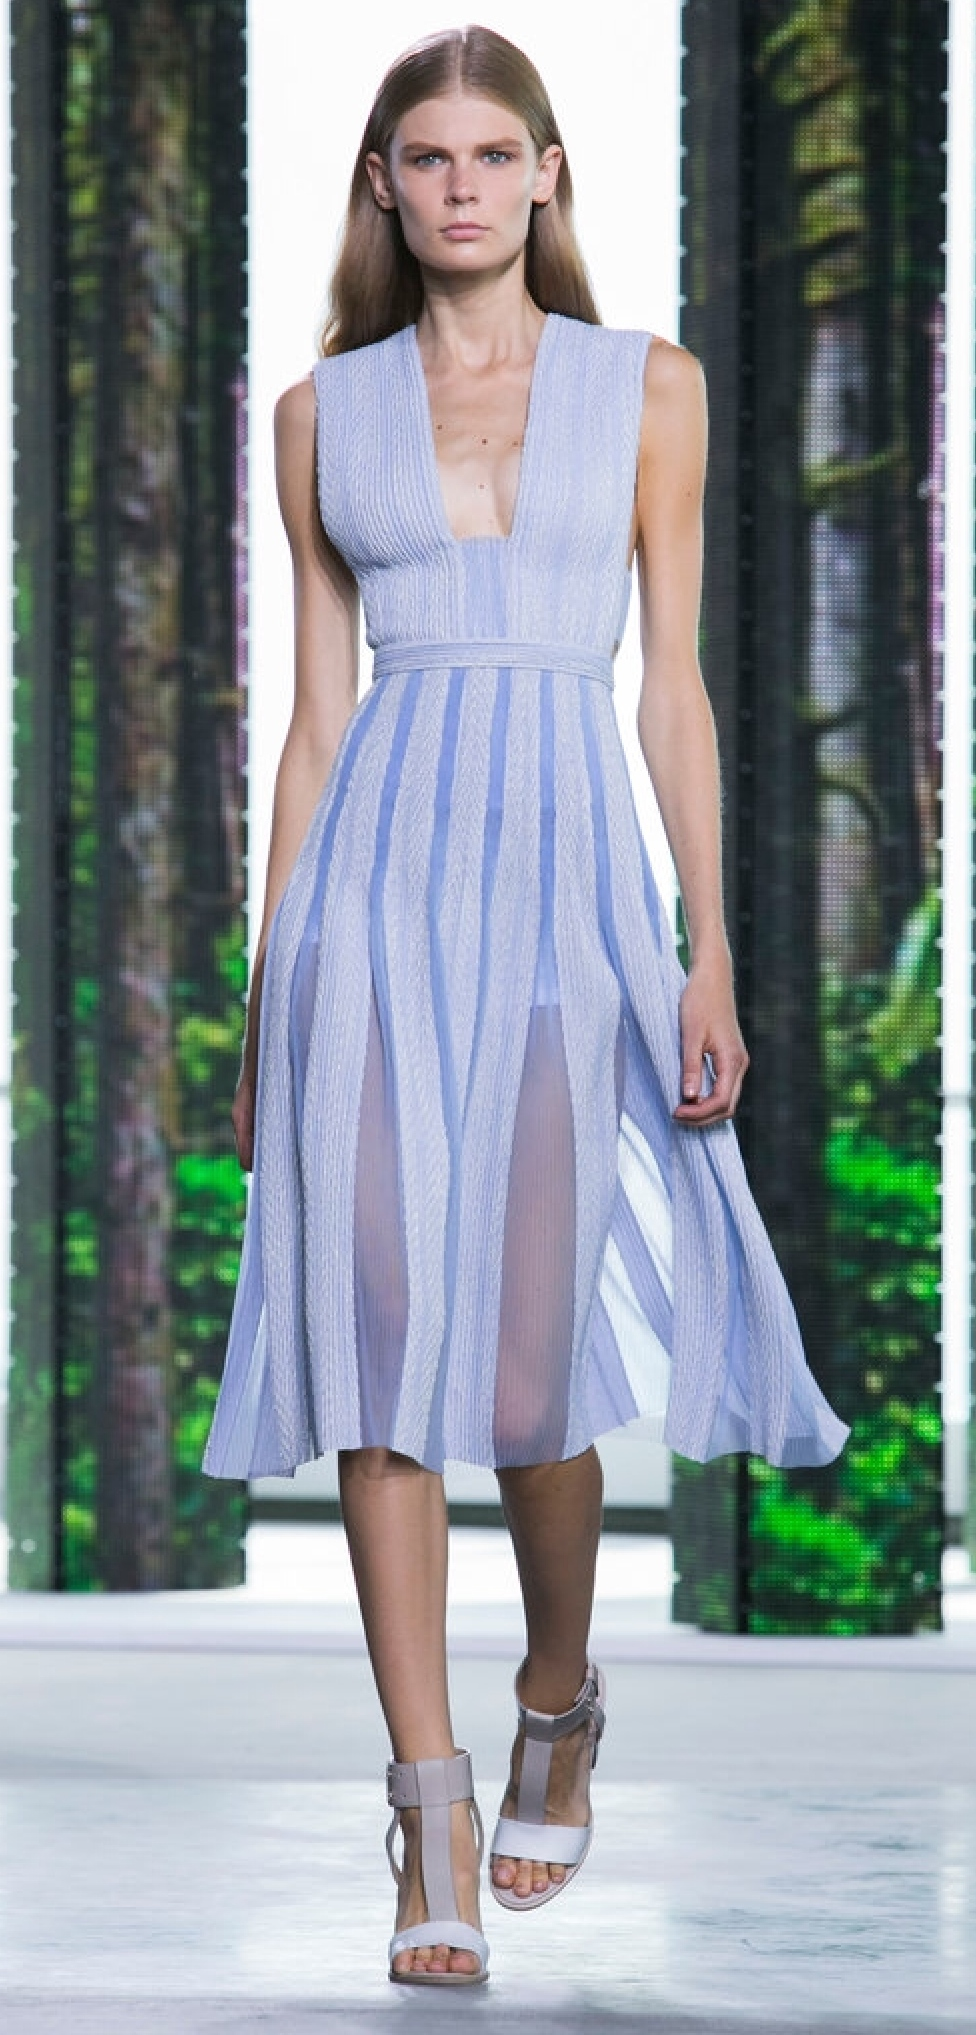 The pleated skirt of this fit and flare dress flutters out with sheer panels at the folds. (Hugo Boss)